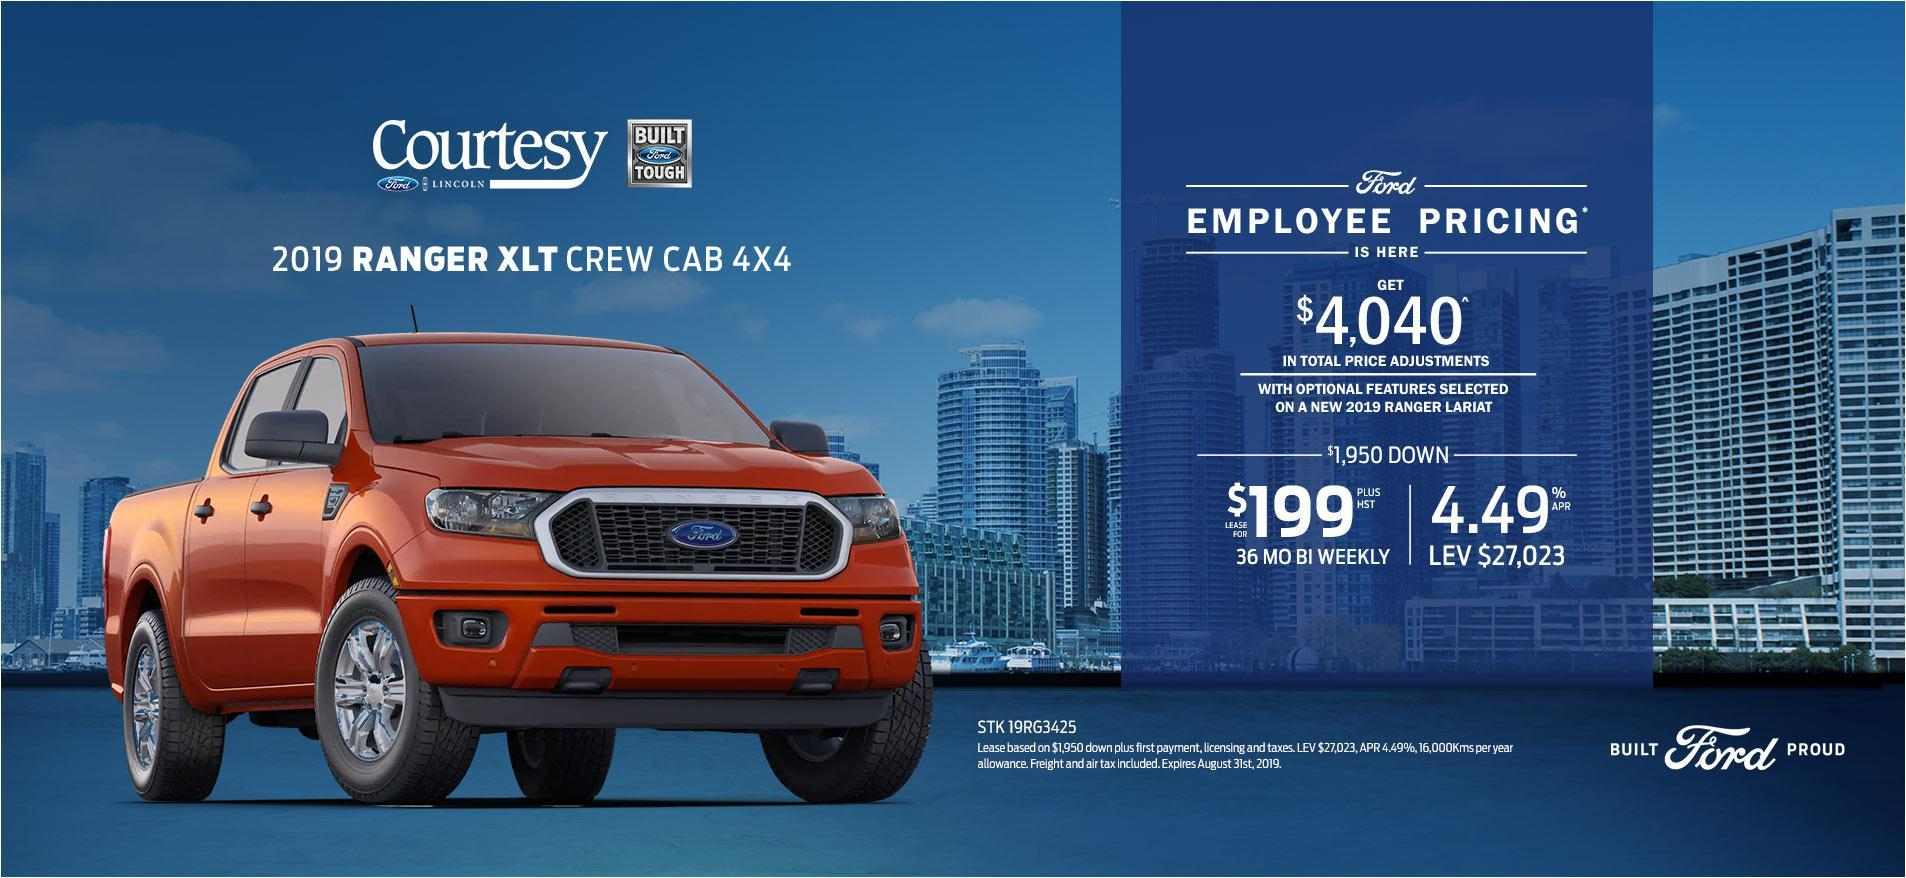 Ford Employee Pricing - Ranger